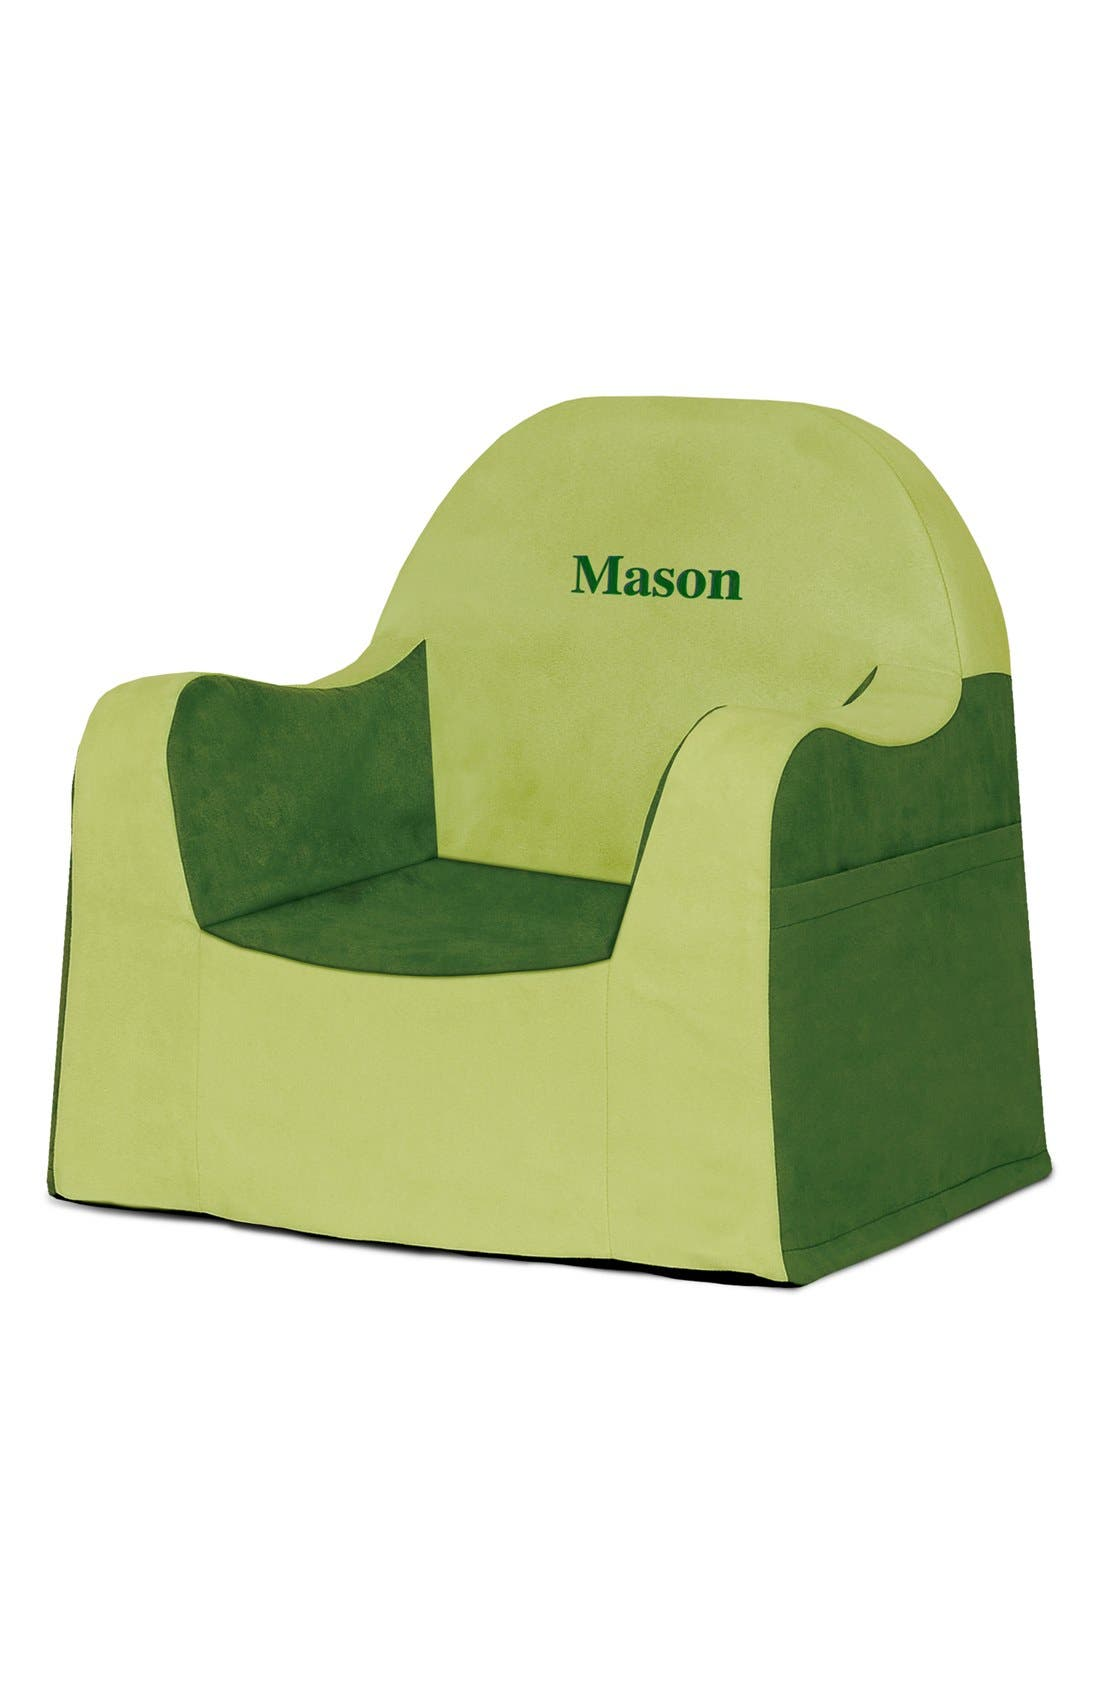 'Personalized Little Reader' Chair,                             Main thumbnail 1, color,                             GREEN